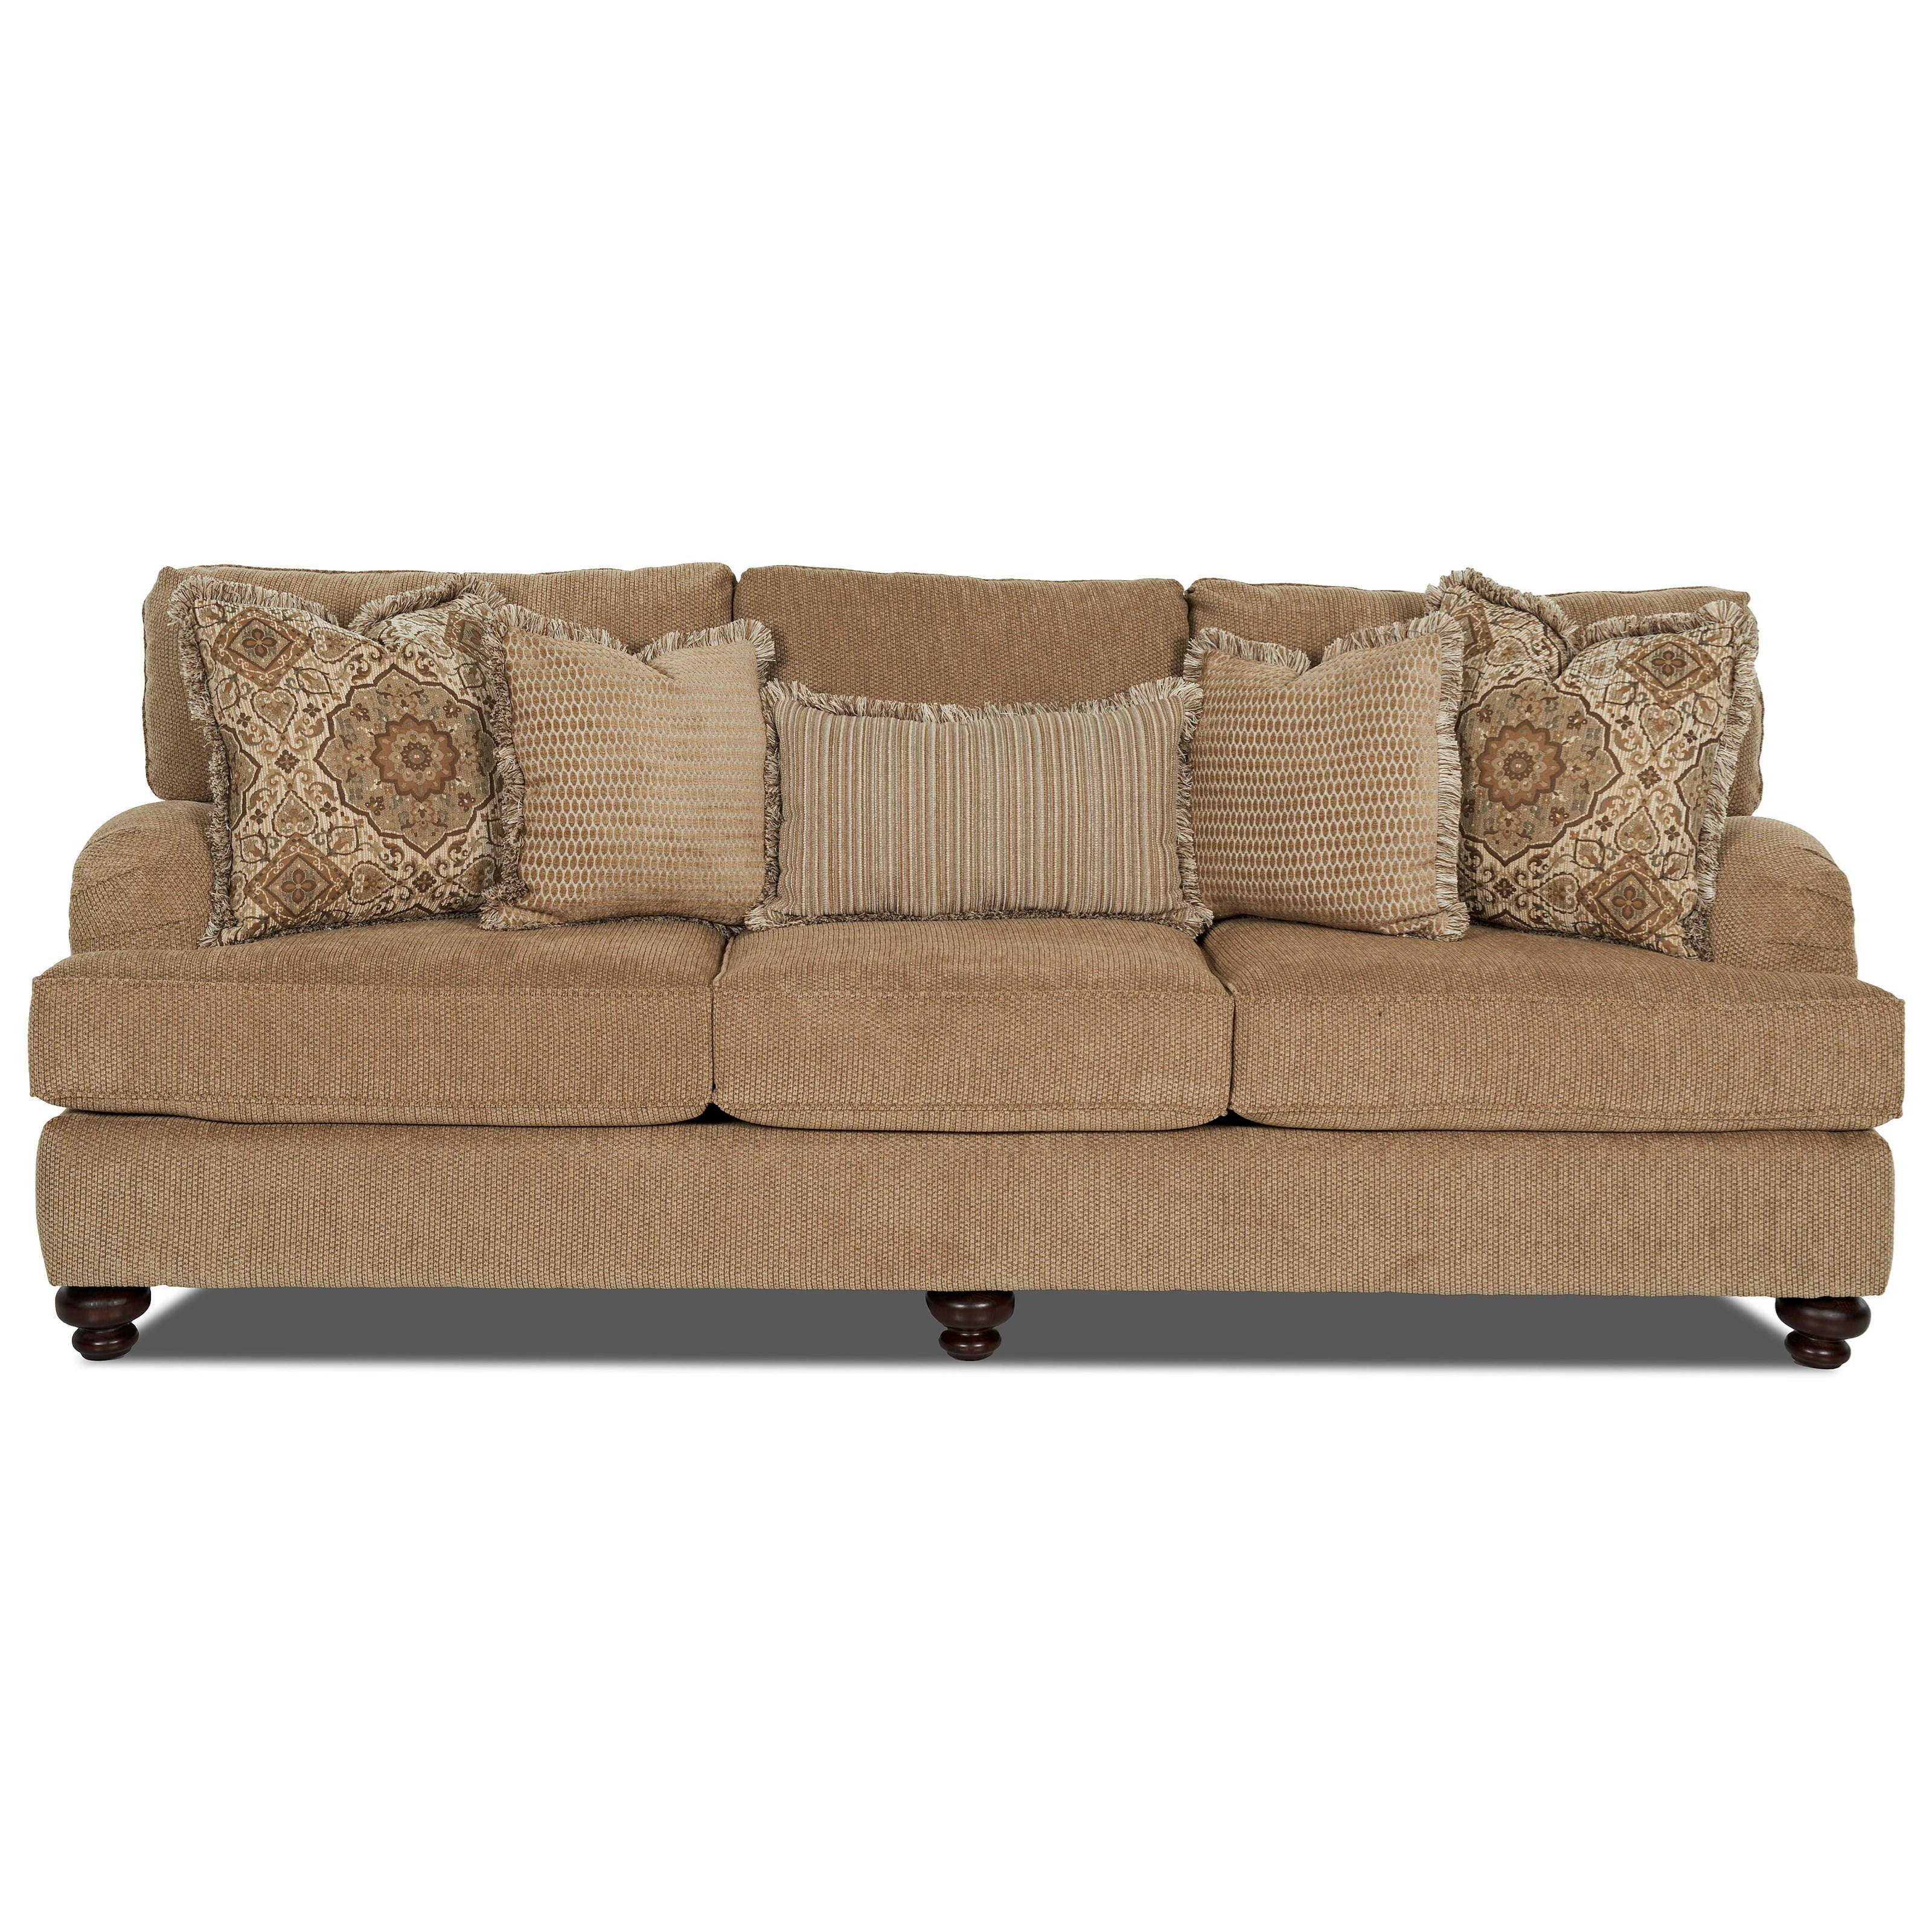 Declan  Traditional Sofa by Klaussner at Johnny Janosik